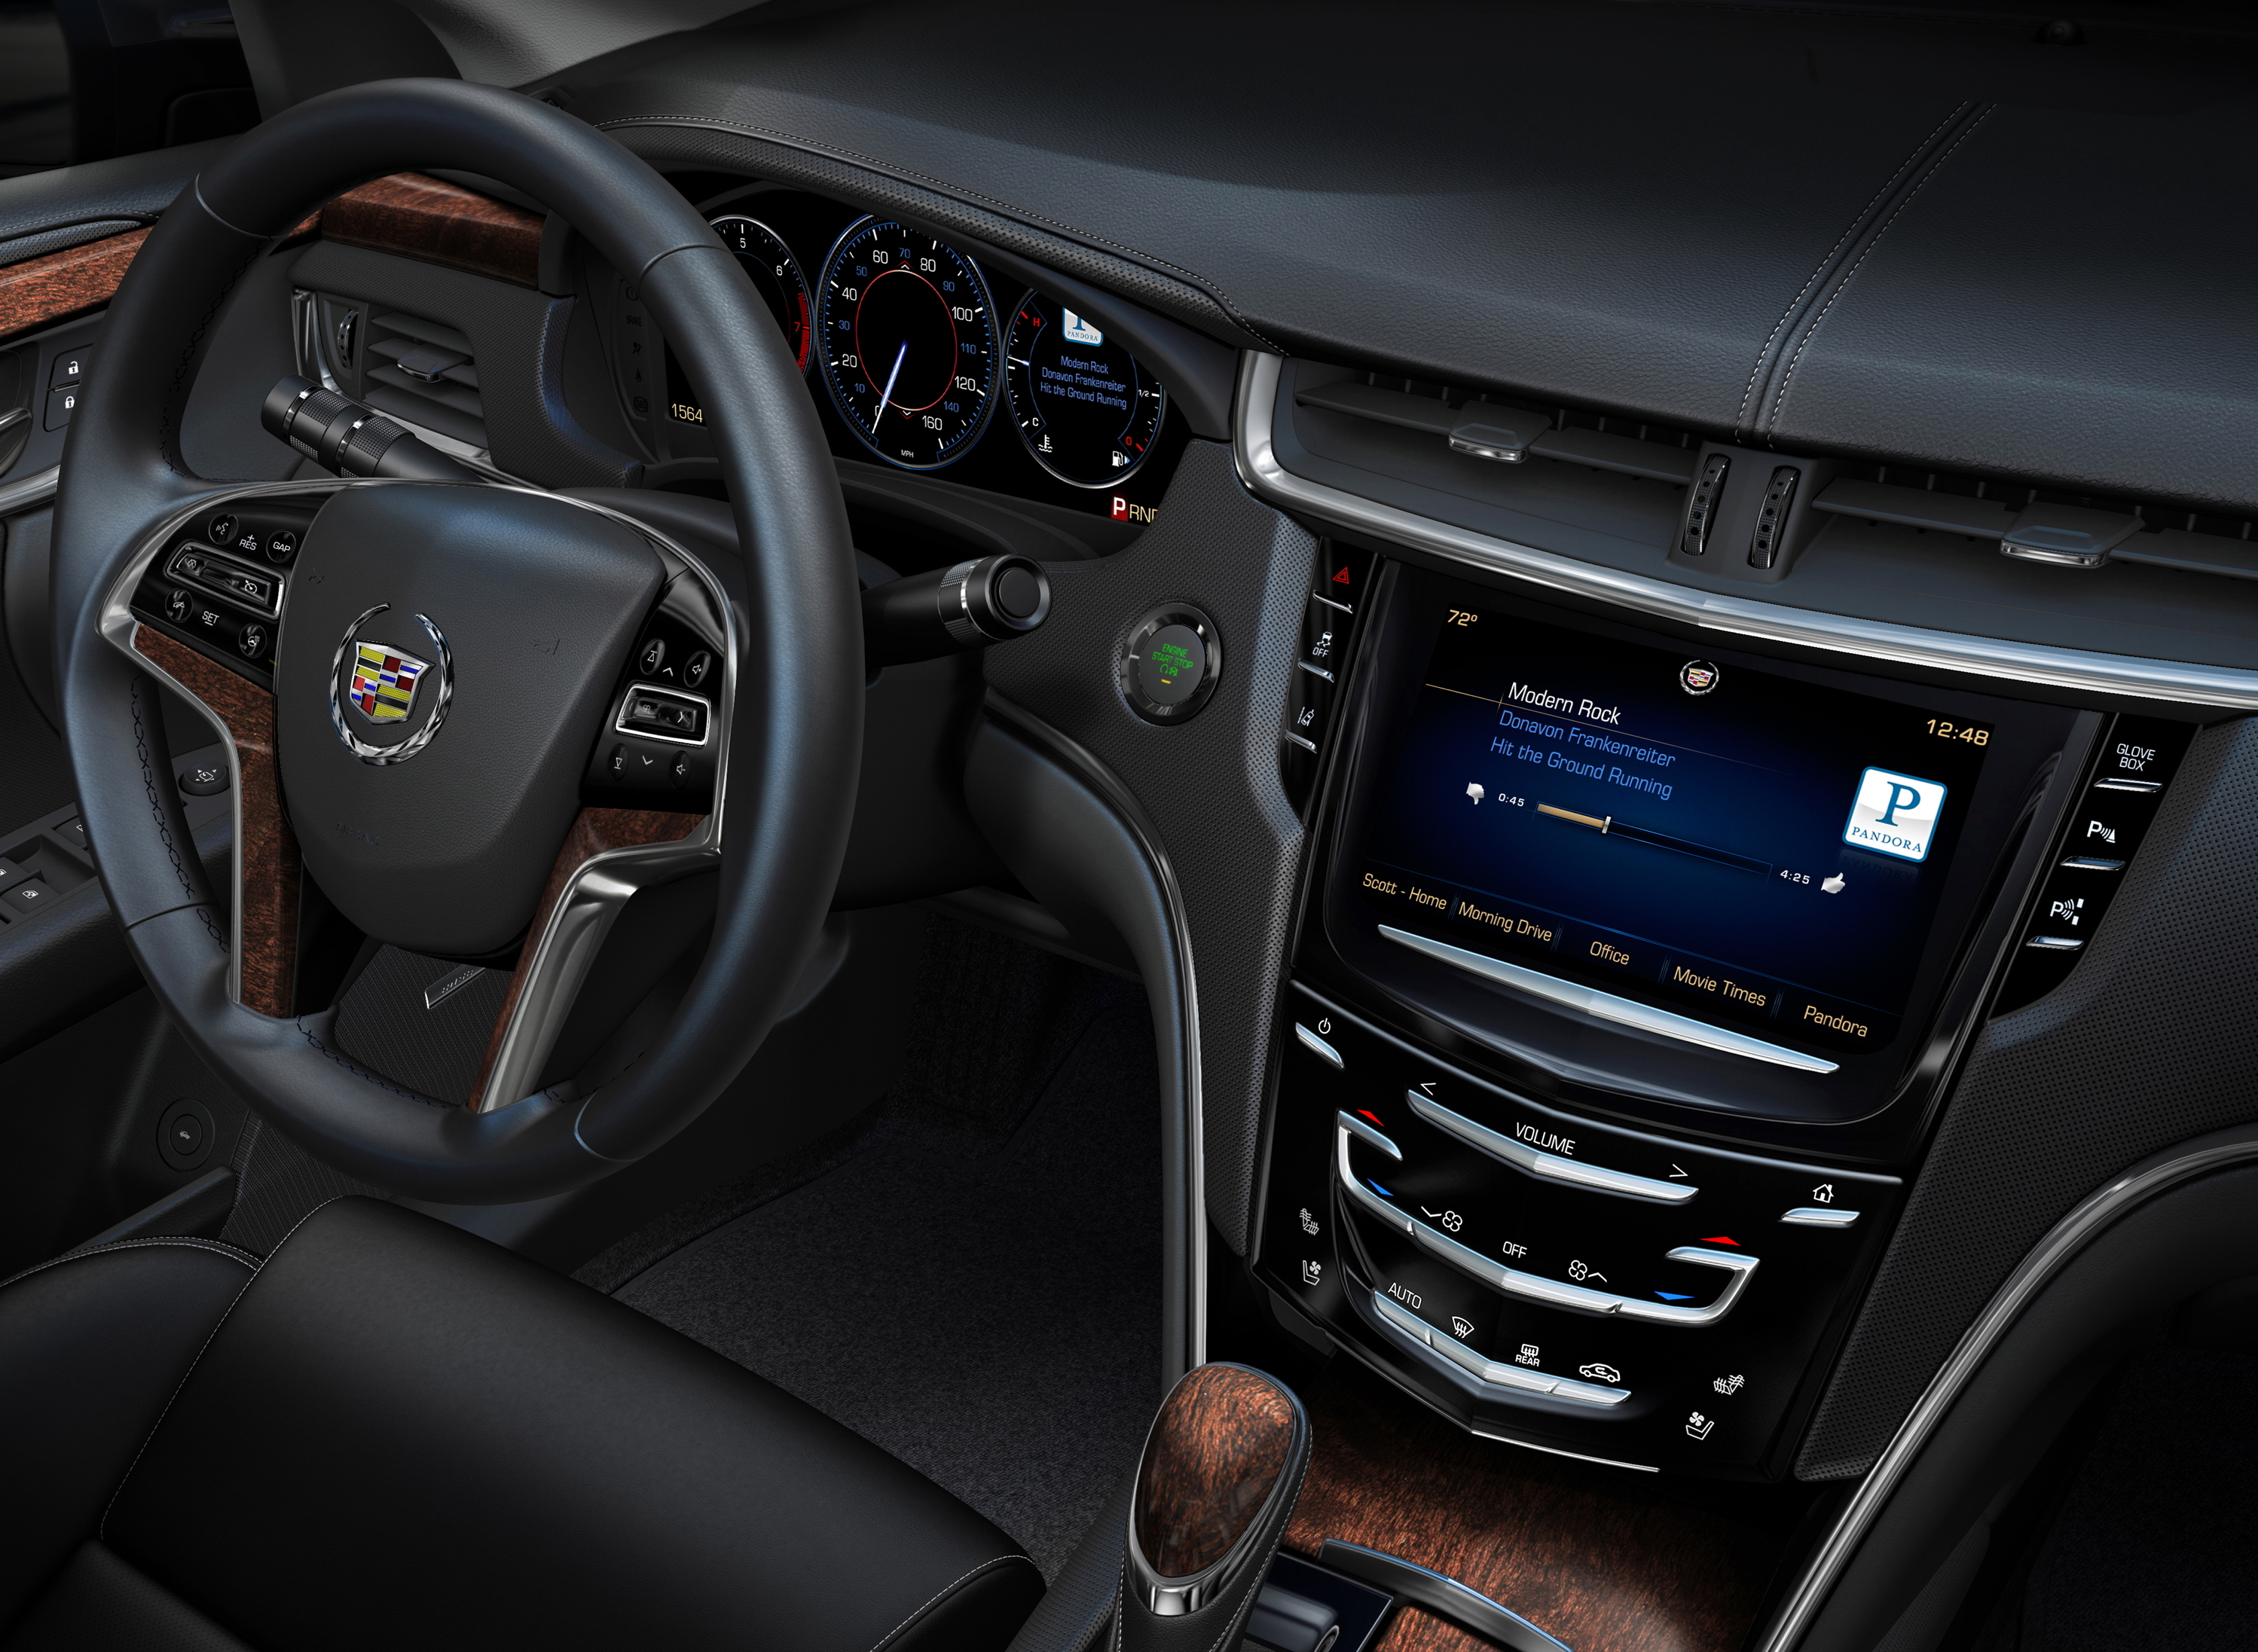 CUE stands for Cadillac User Experience.